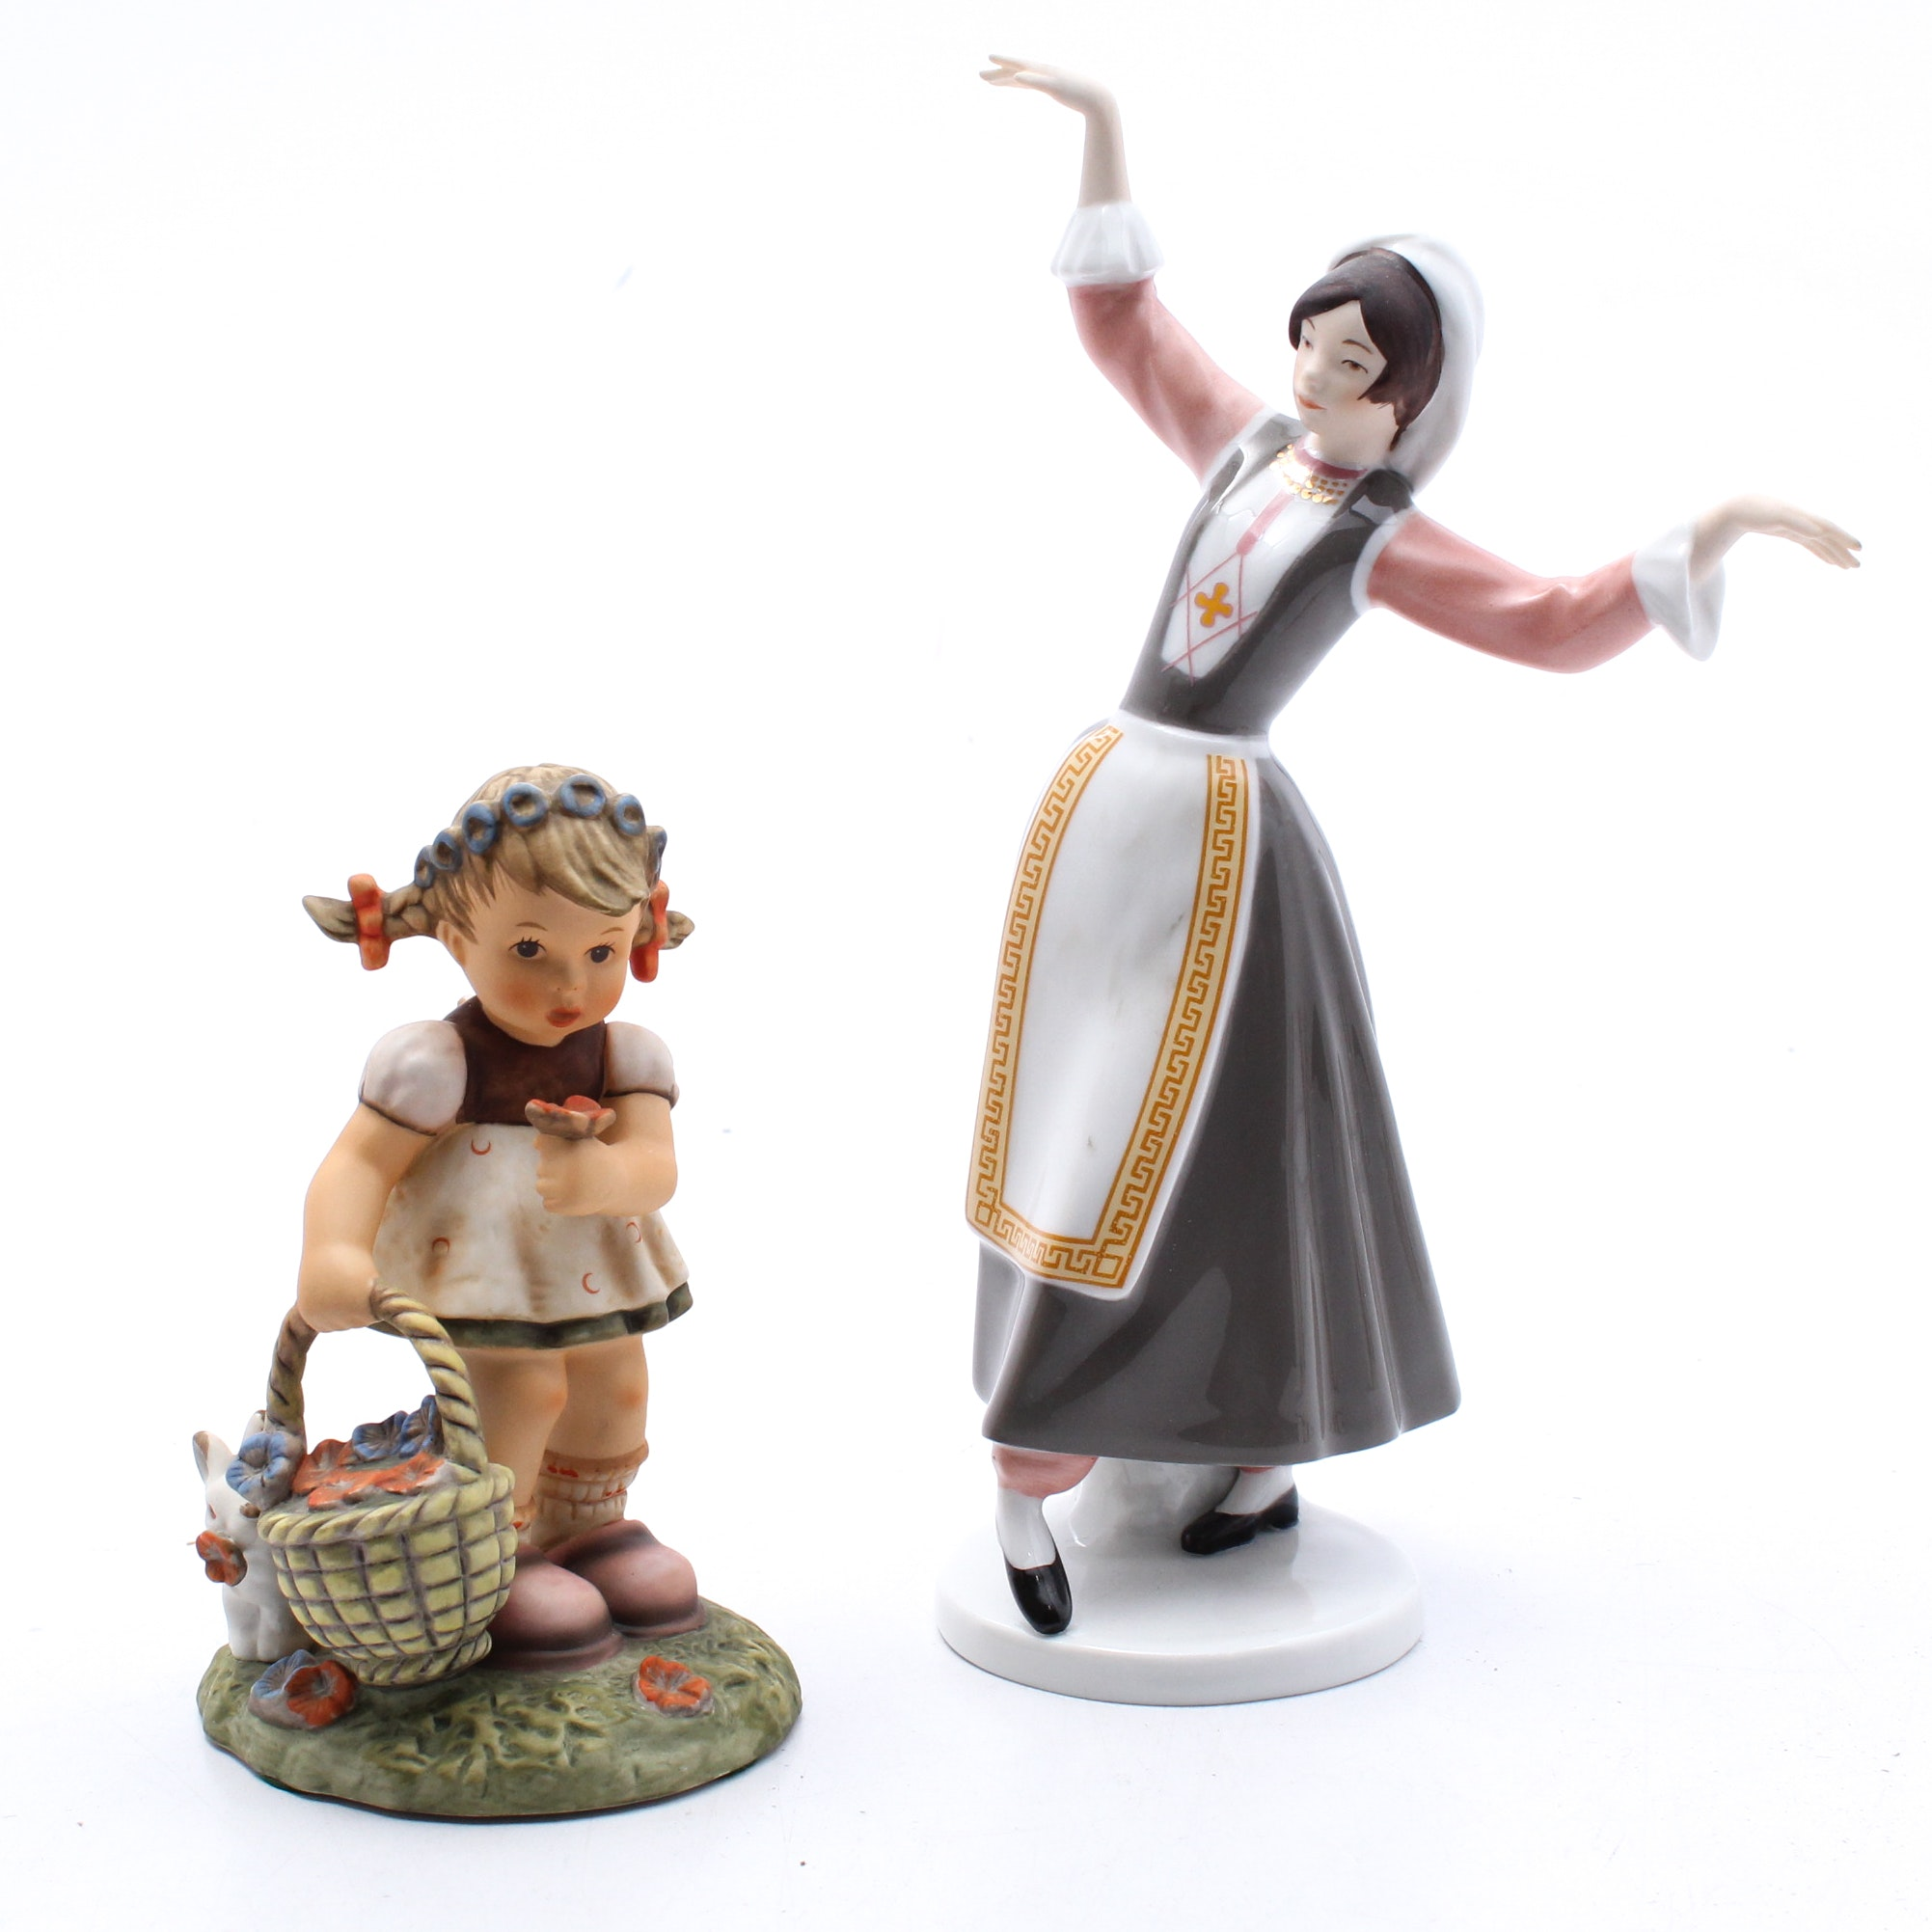 """Goebel Figurines """"Helena"""" and """"Spring Blossoms"""""""